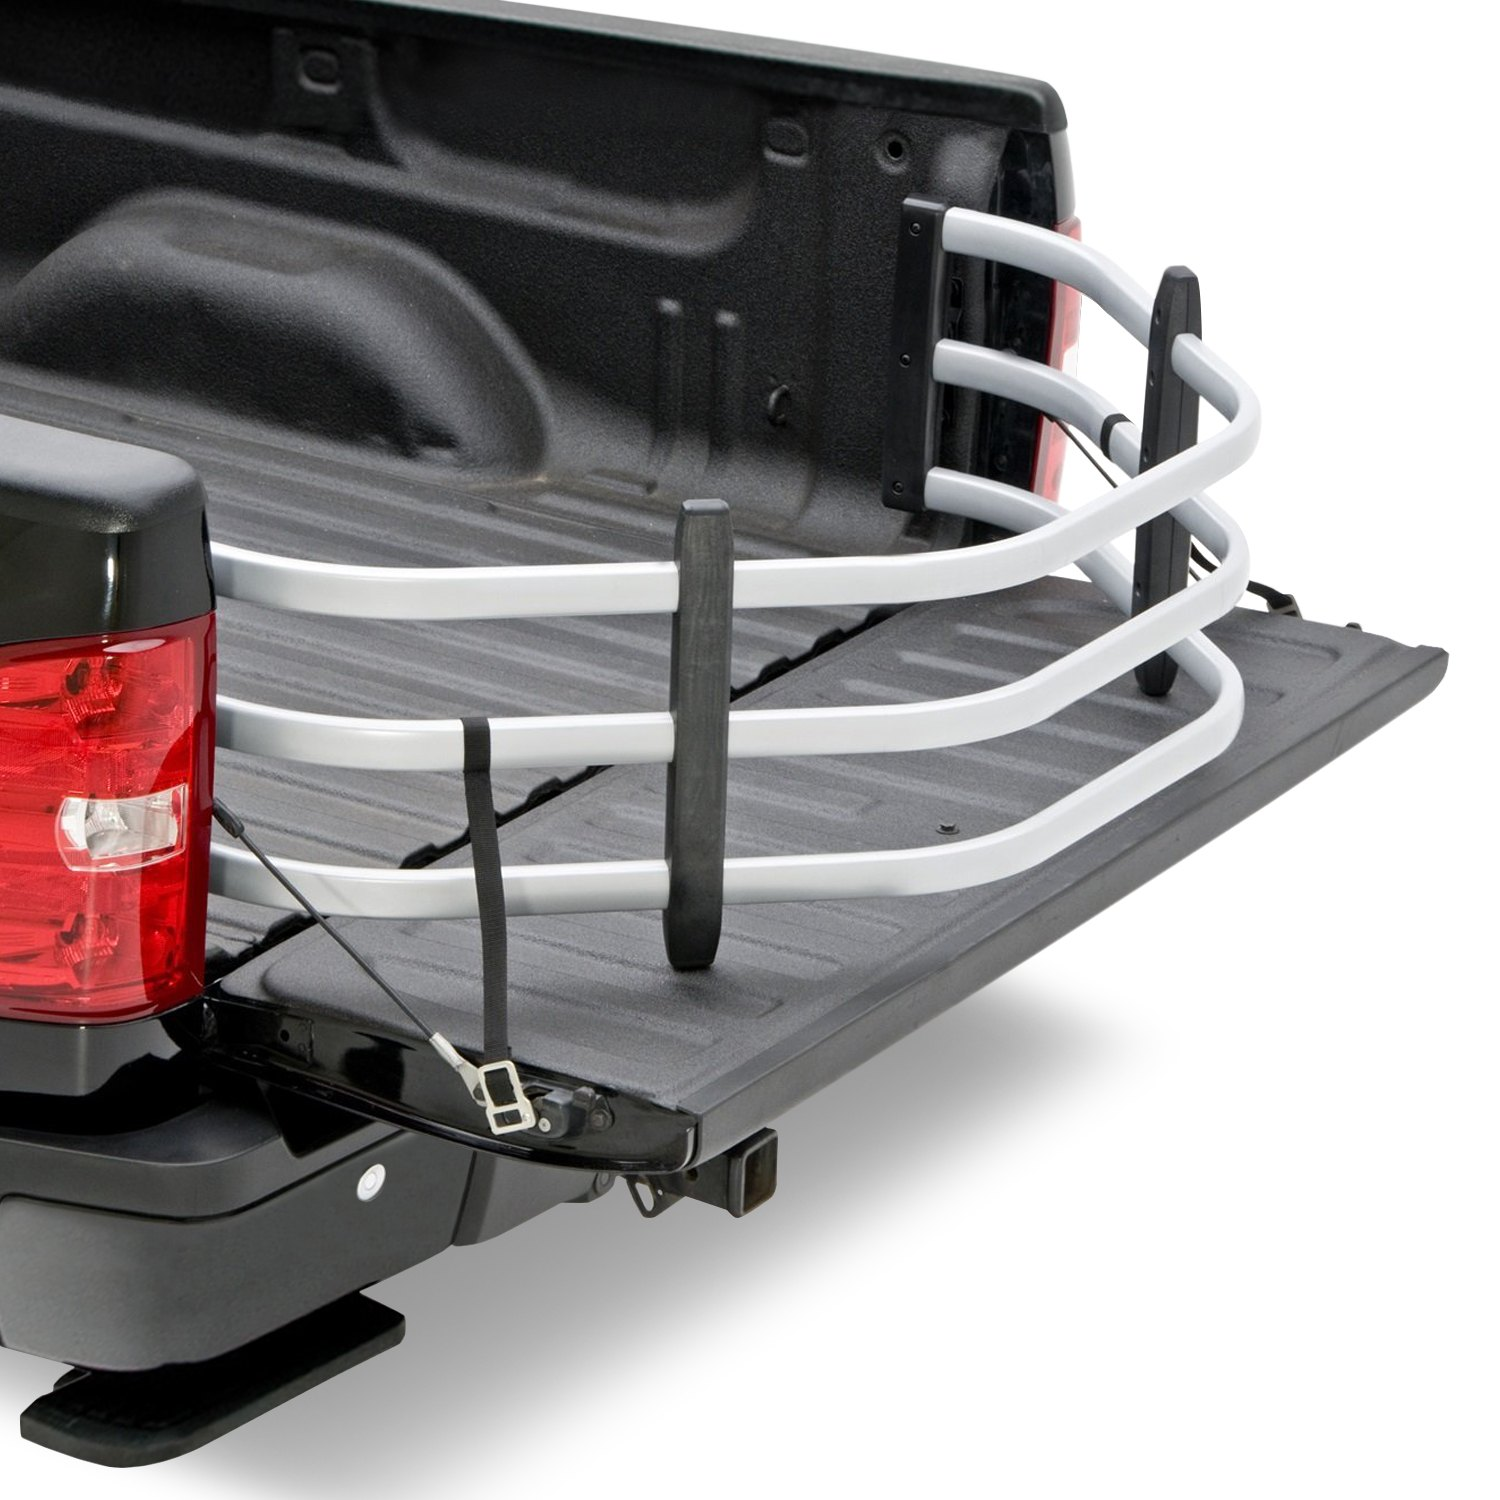 official site accessories kit the for a ford extender bed